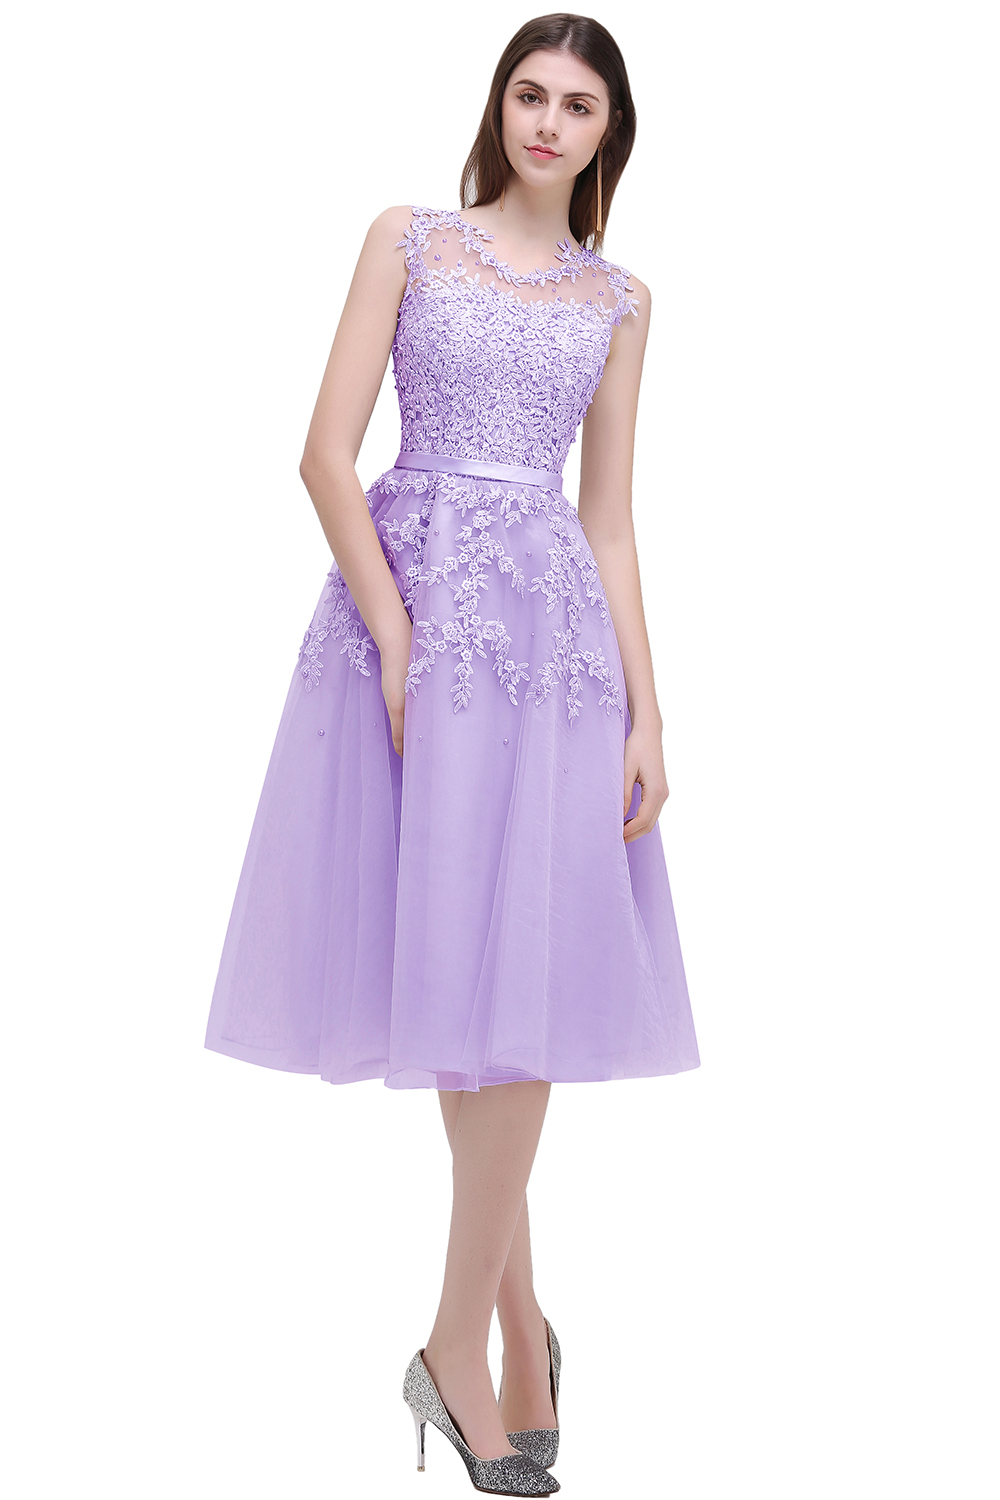 Aliexpress.com : Buy Cheap Dust Pink Beaded Lace Tulle Prom ...